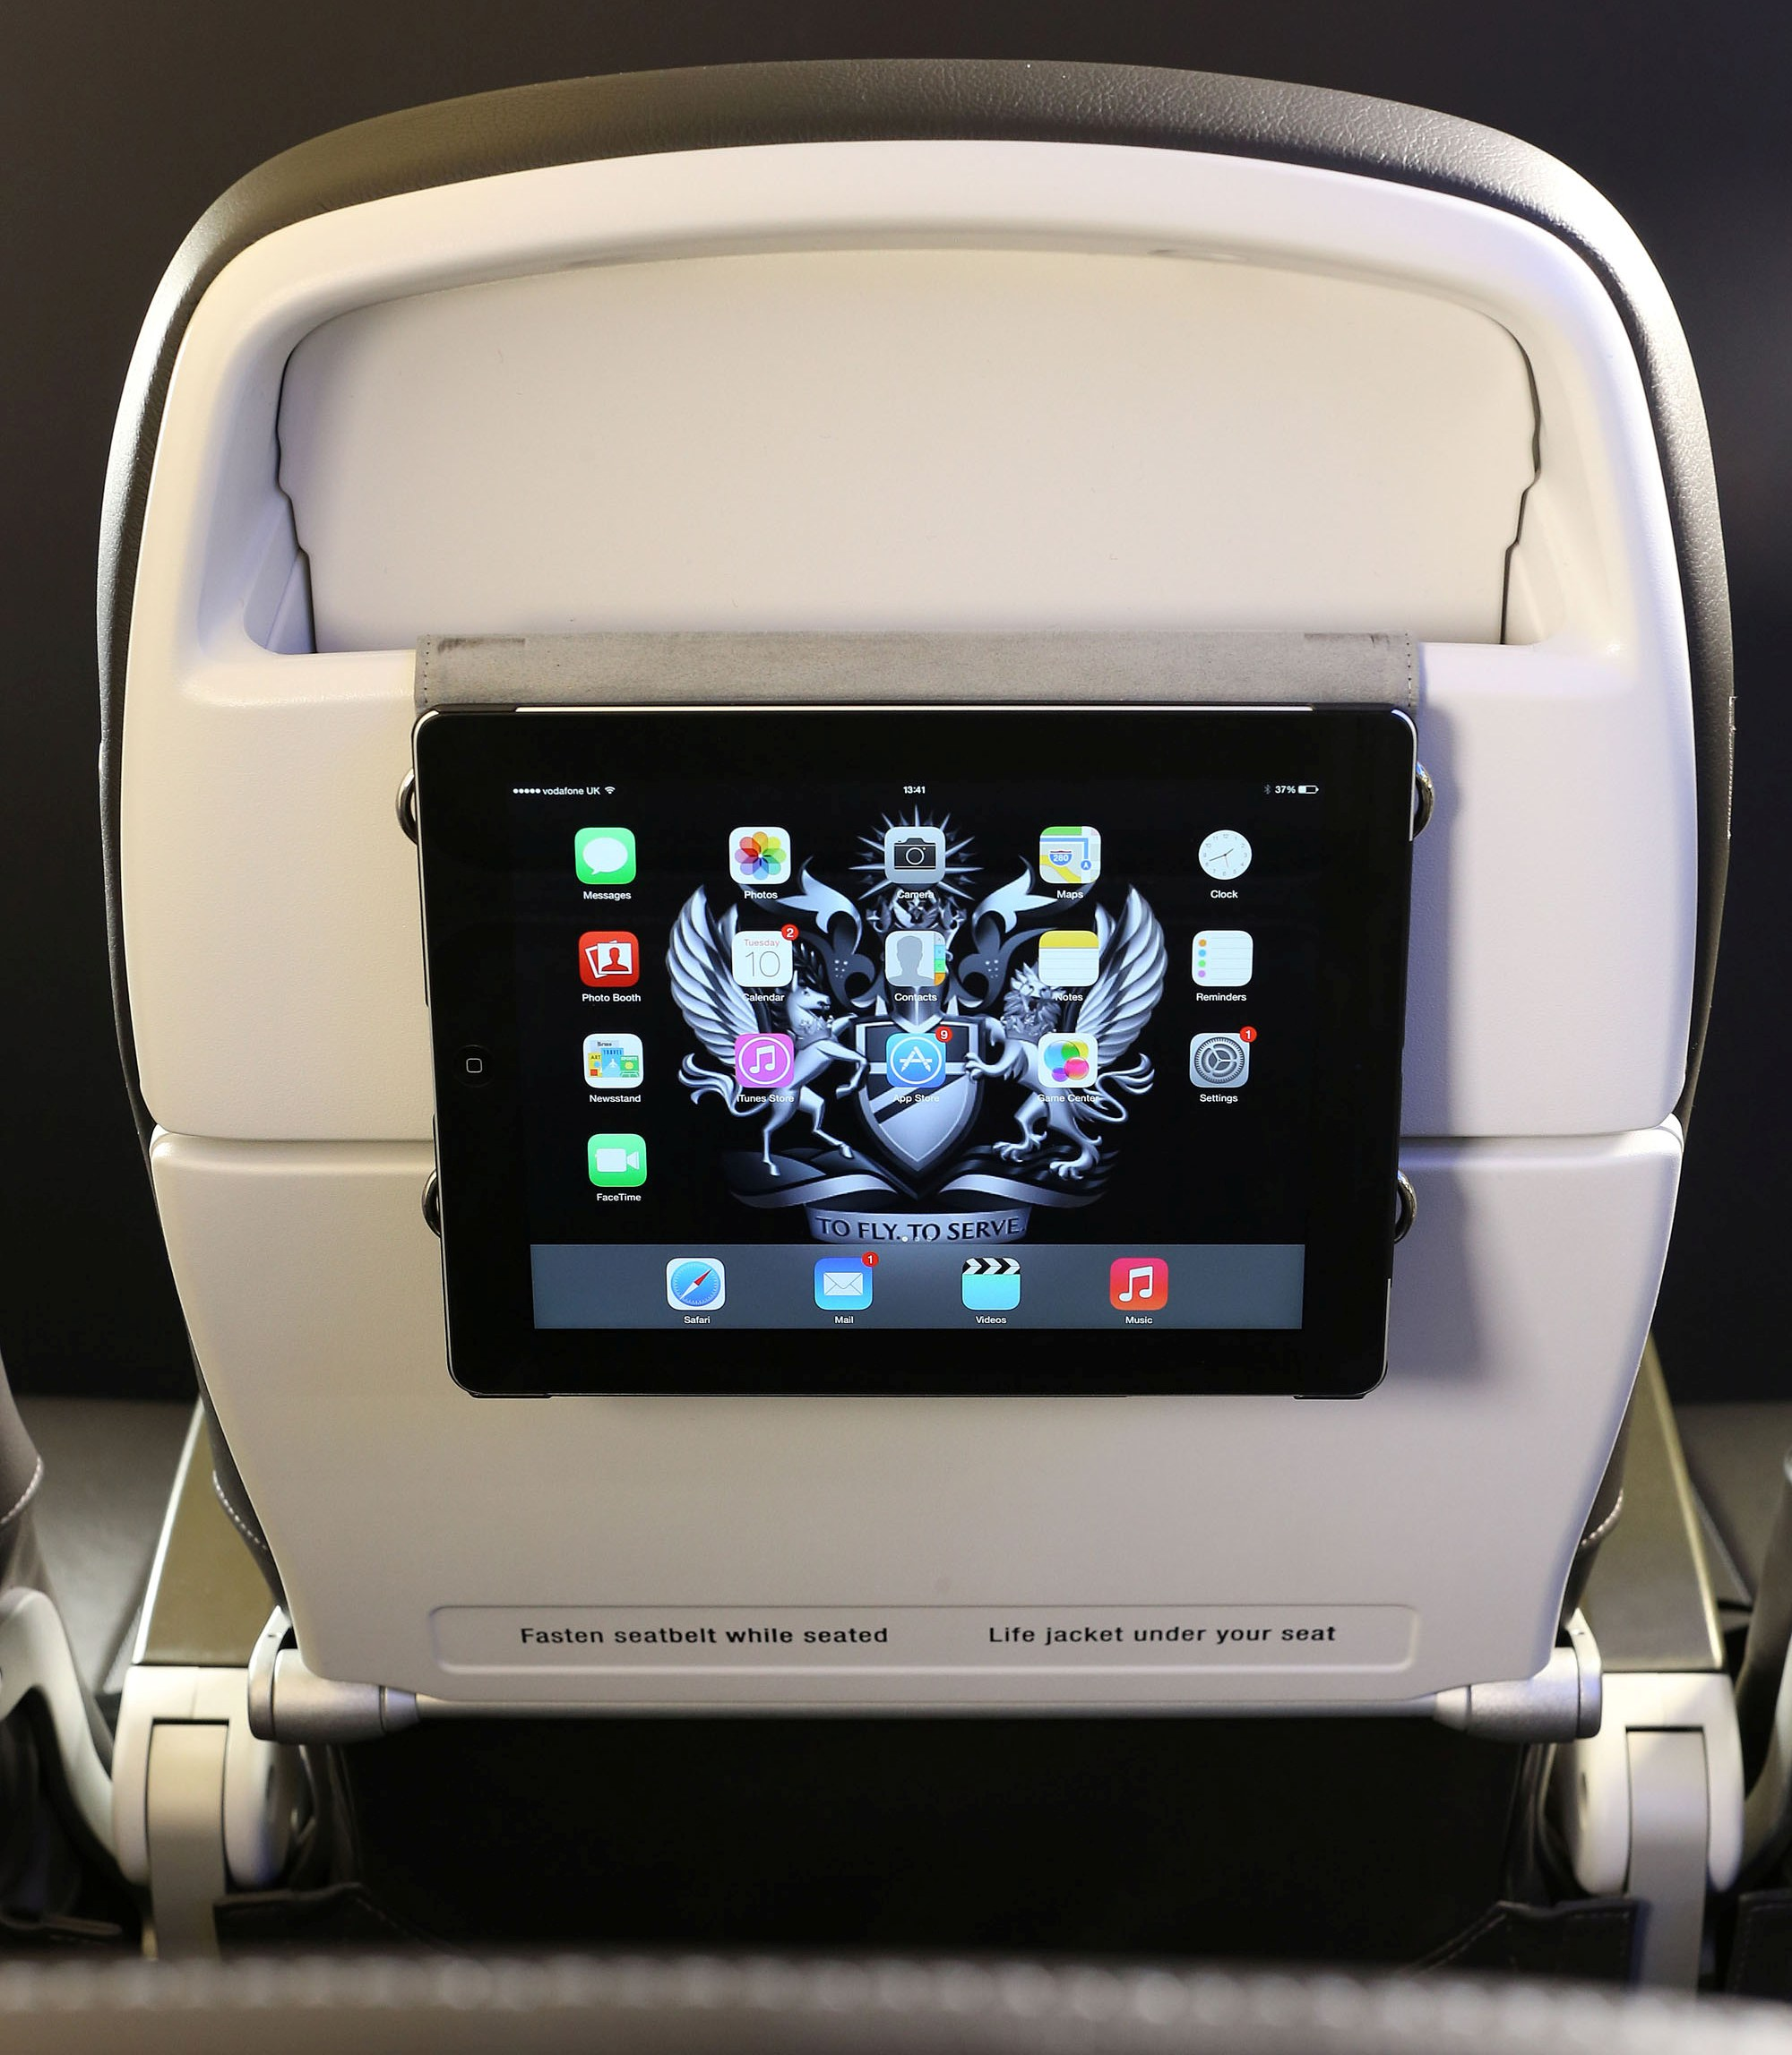 BA_short haul_slim line seat_tablet holder